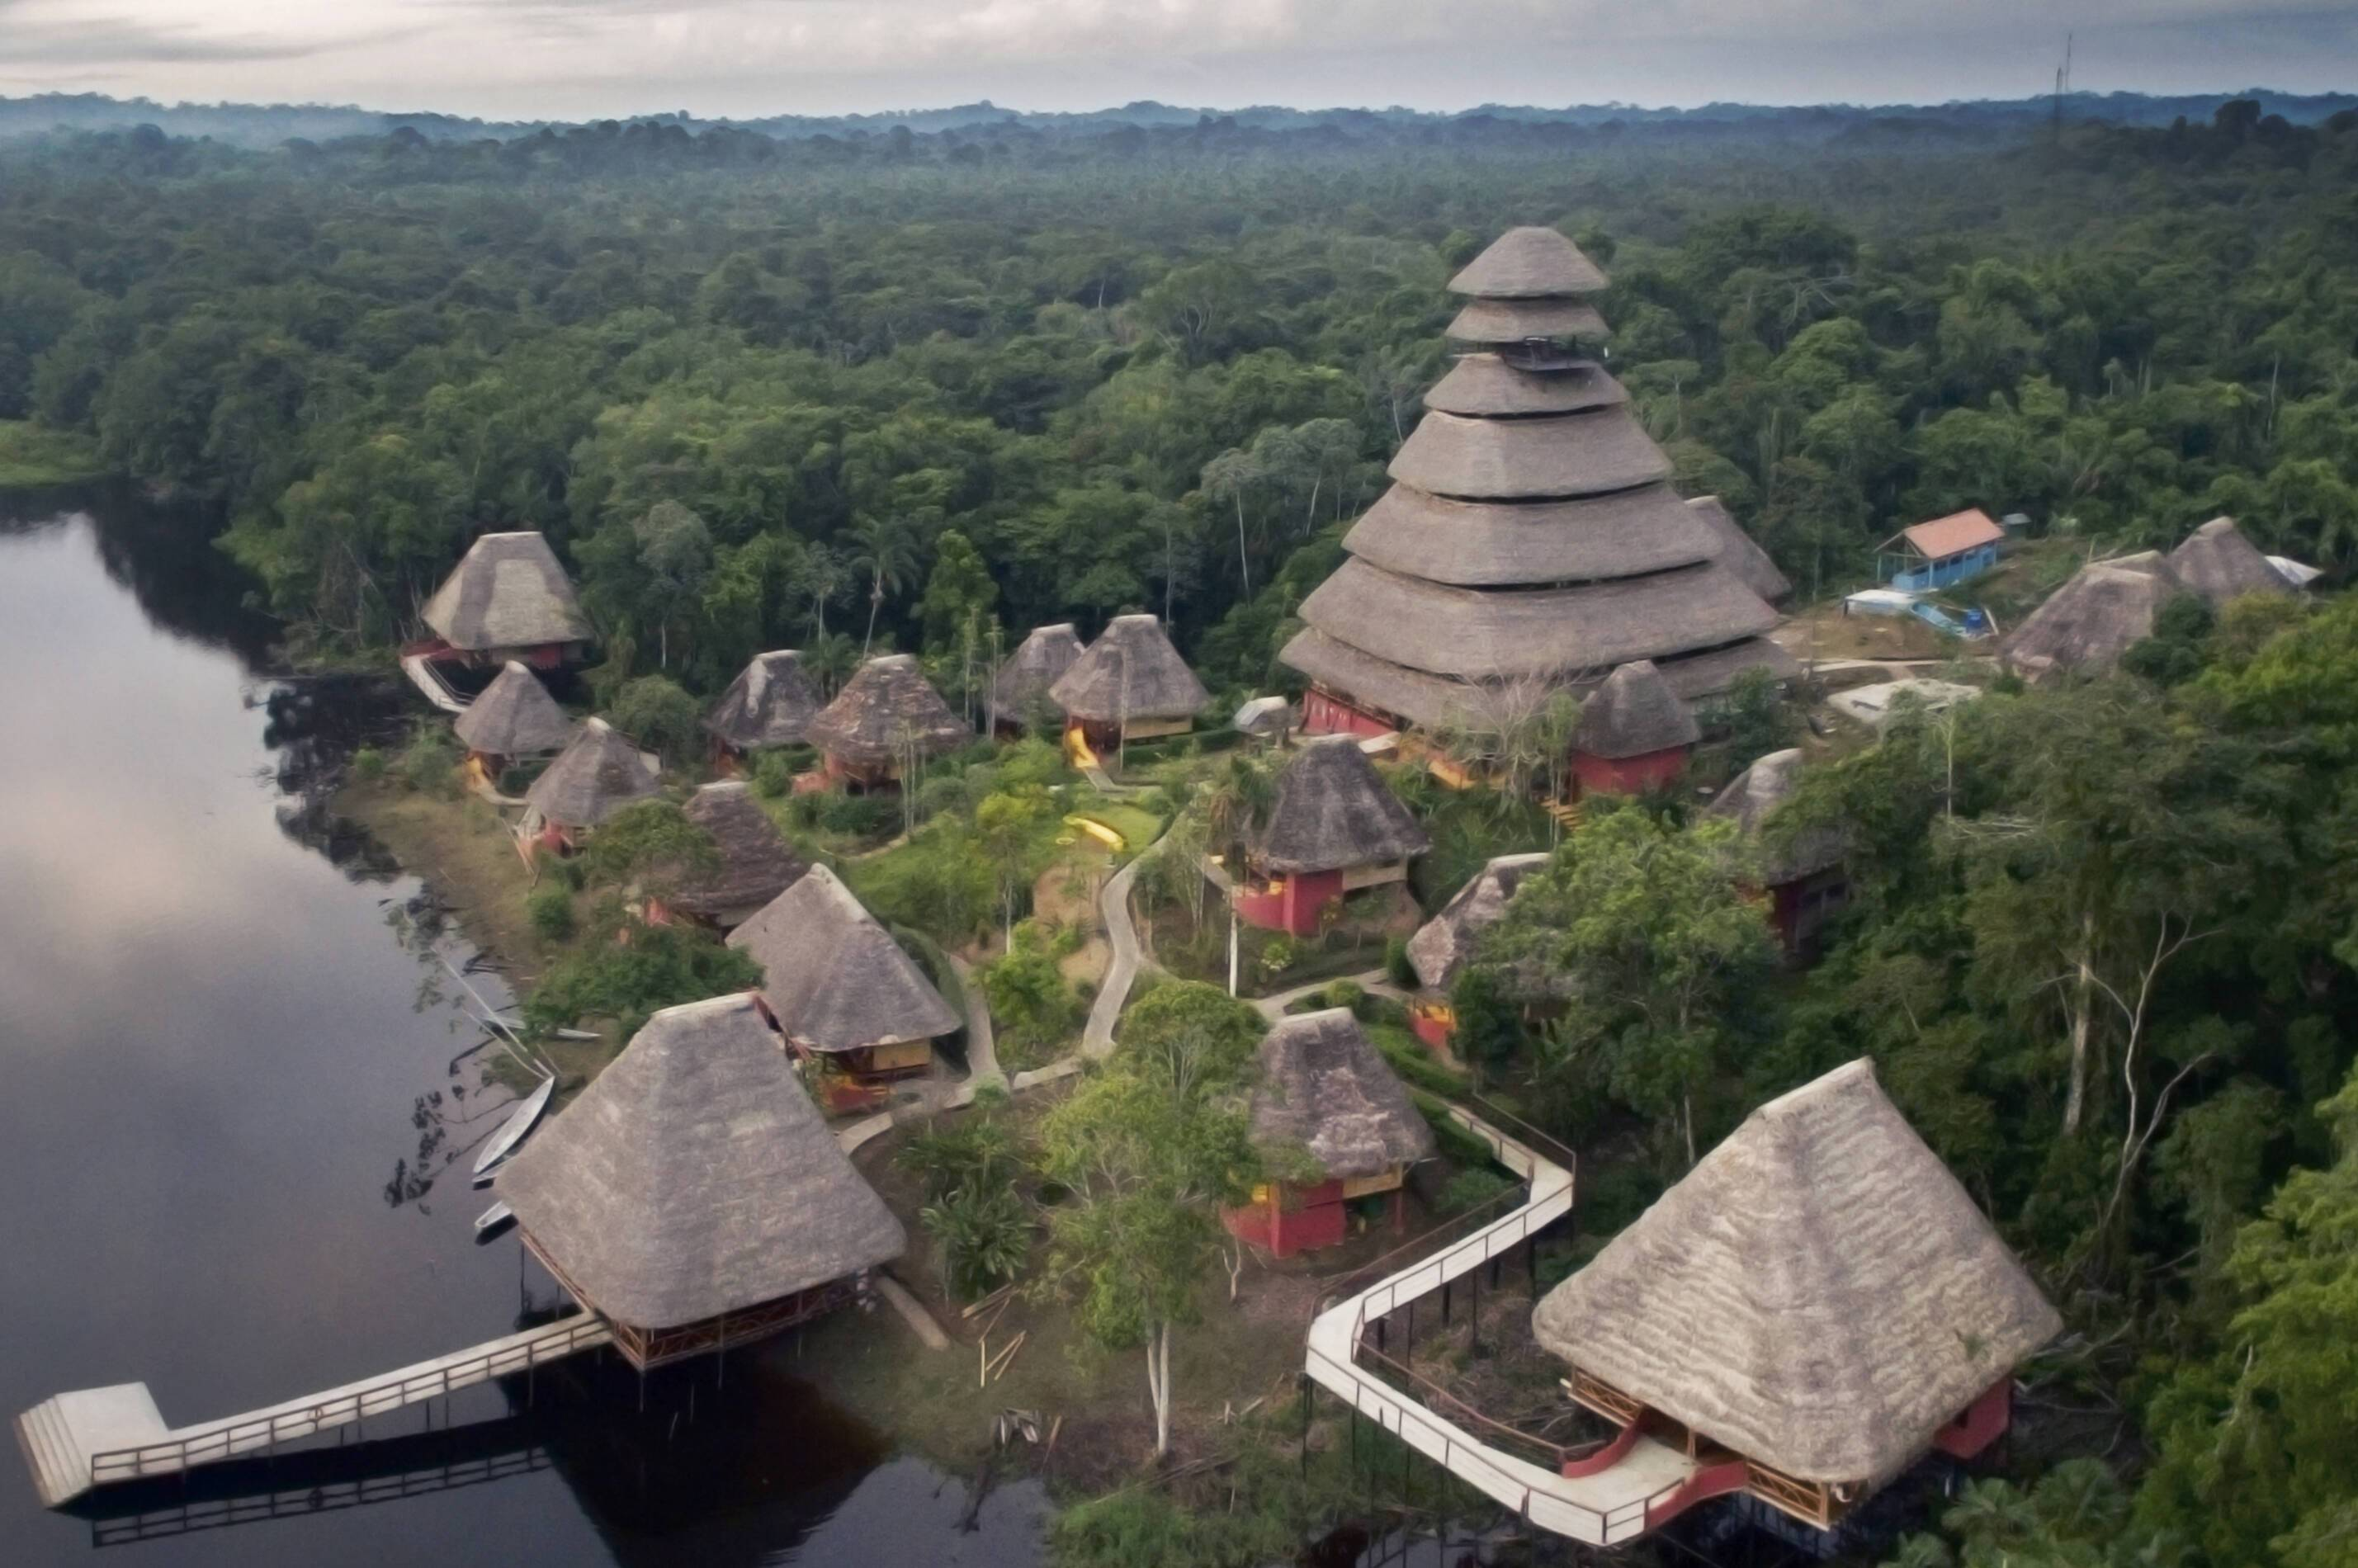 Napo Wildlife Center Vue Aerienne Equateur